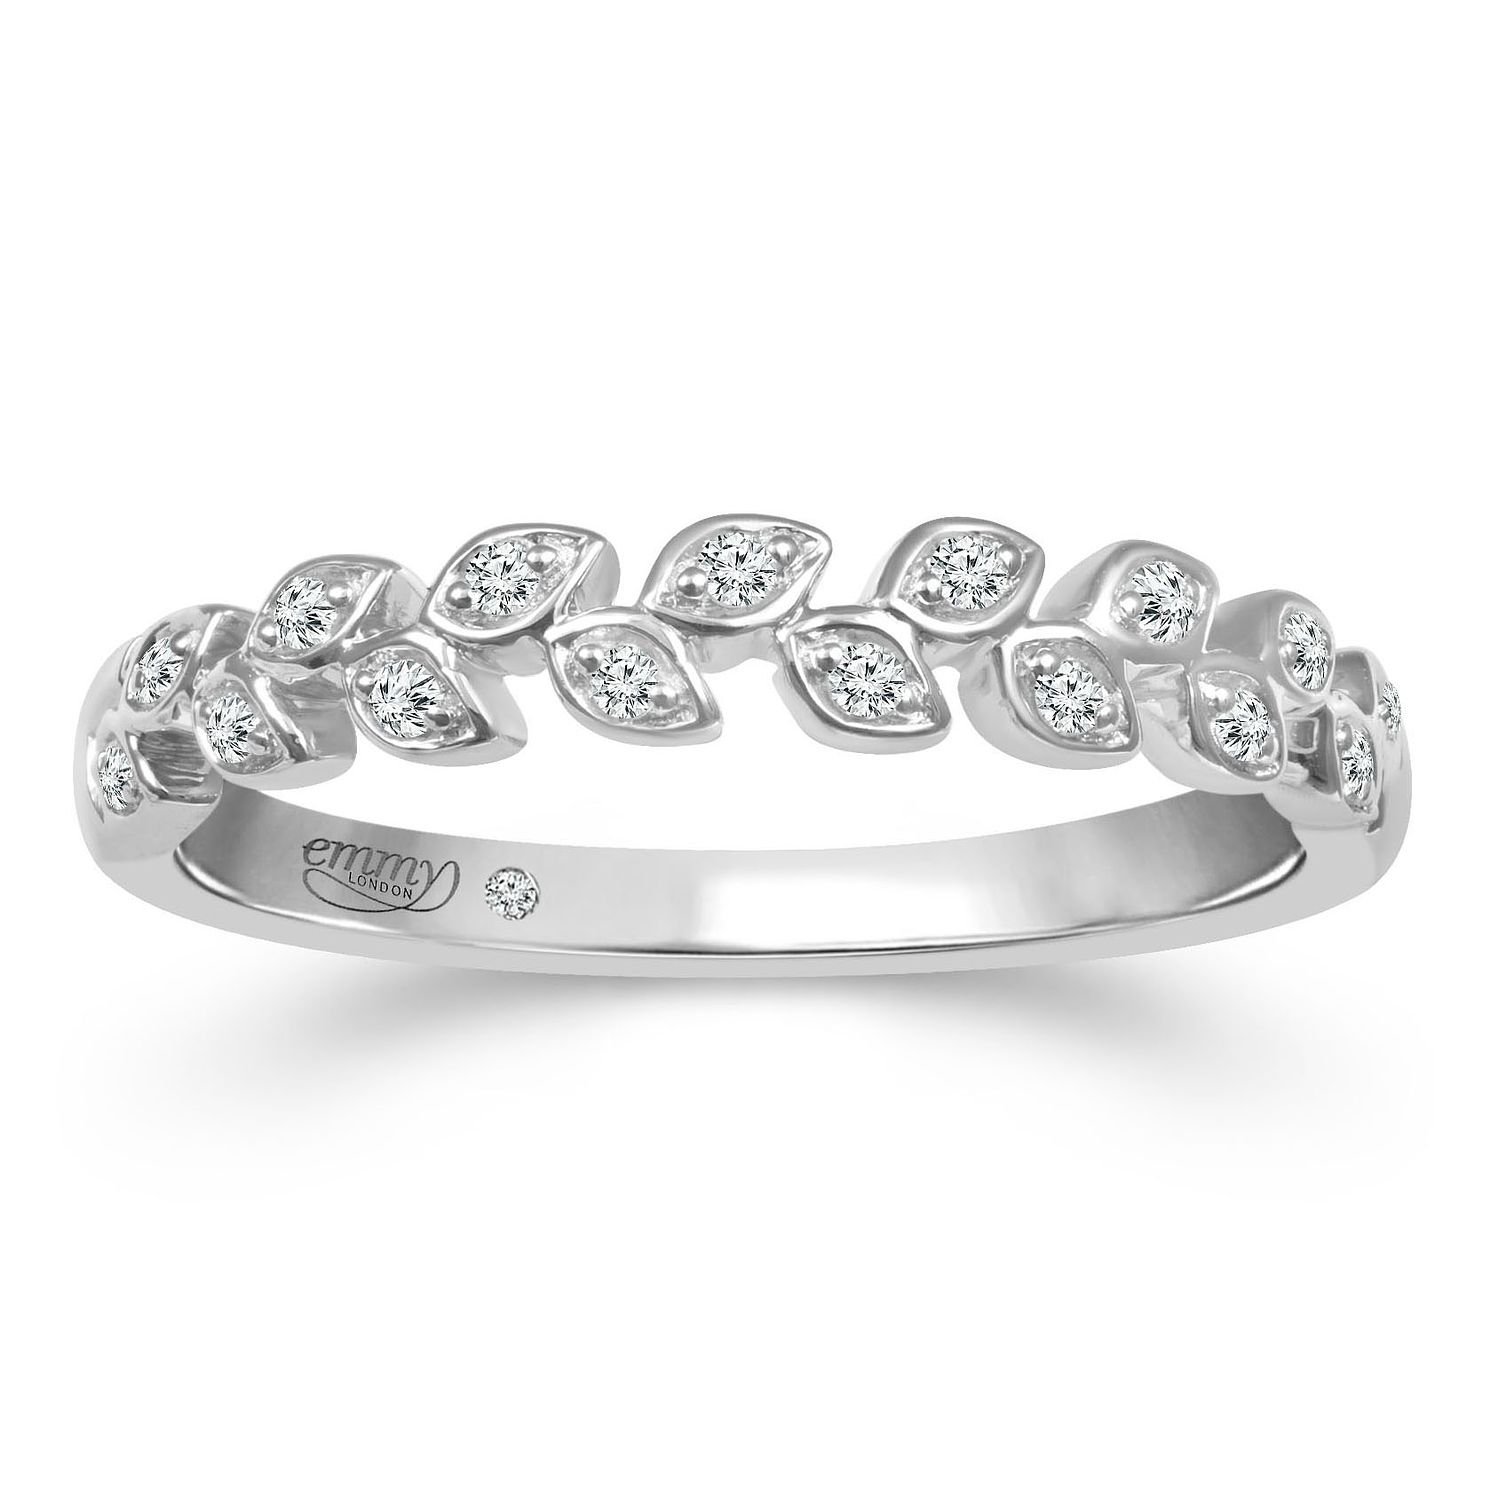 Emmy London 18ct White Gold Diamond Leaf Eternity Ring - Product number 2884402